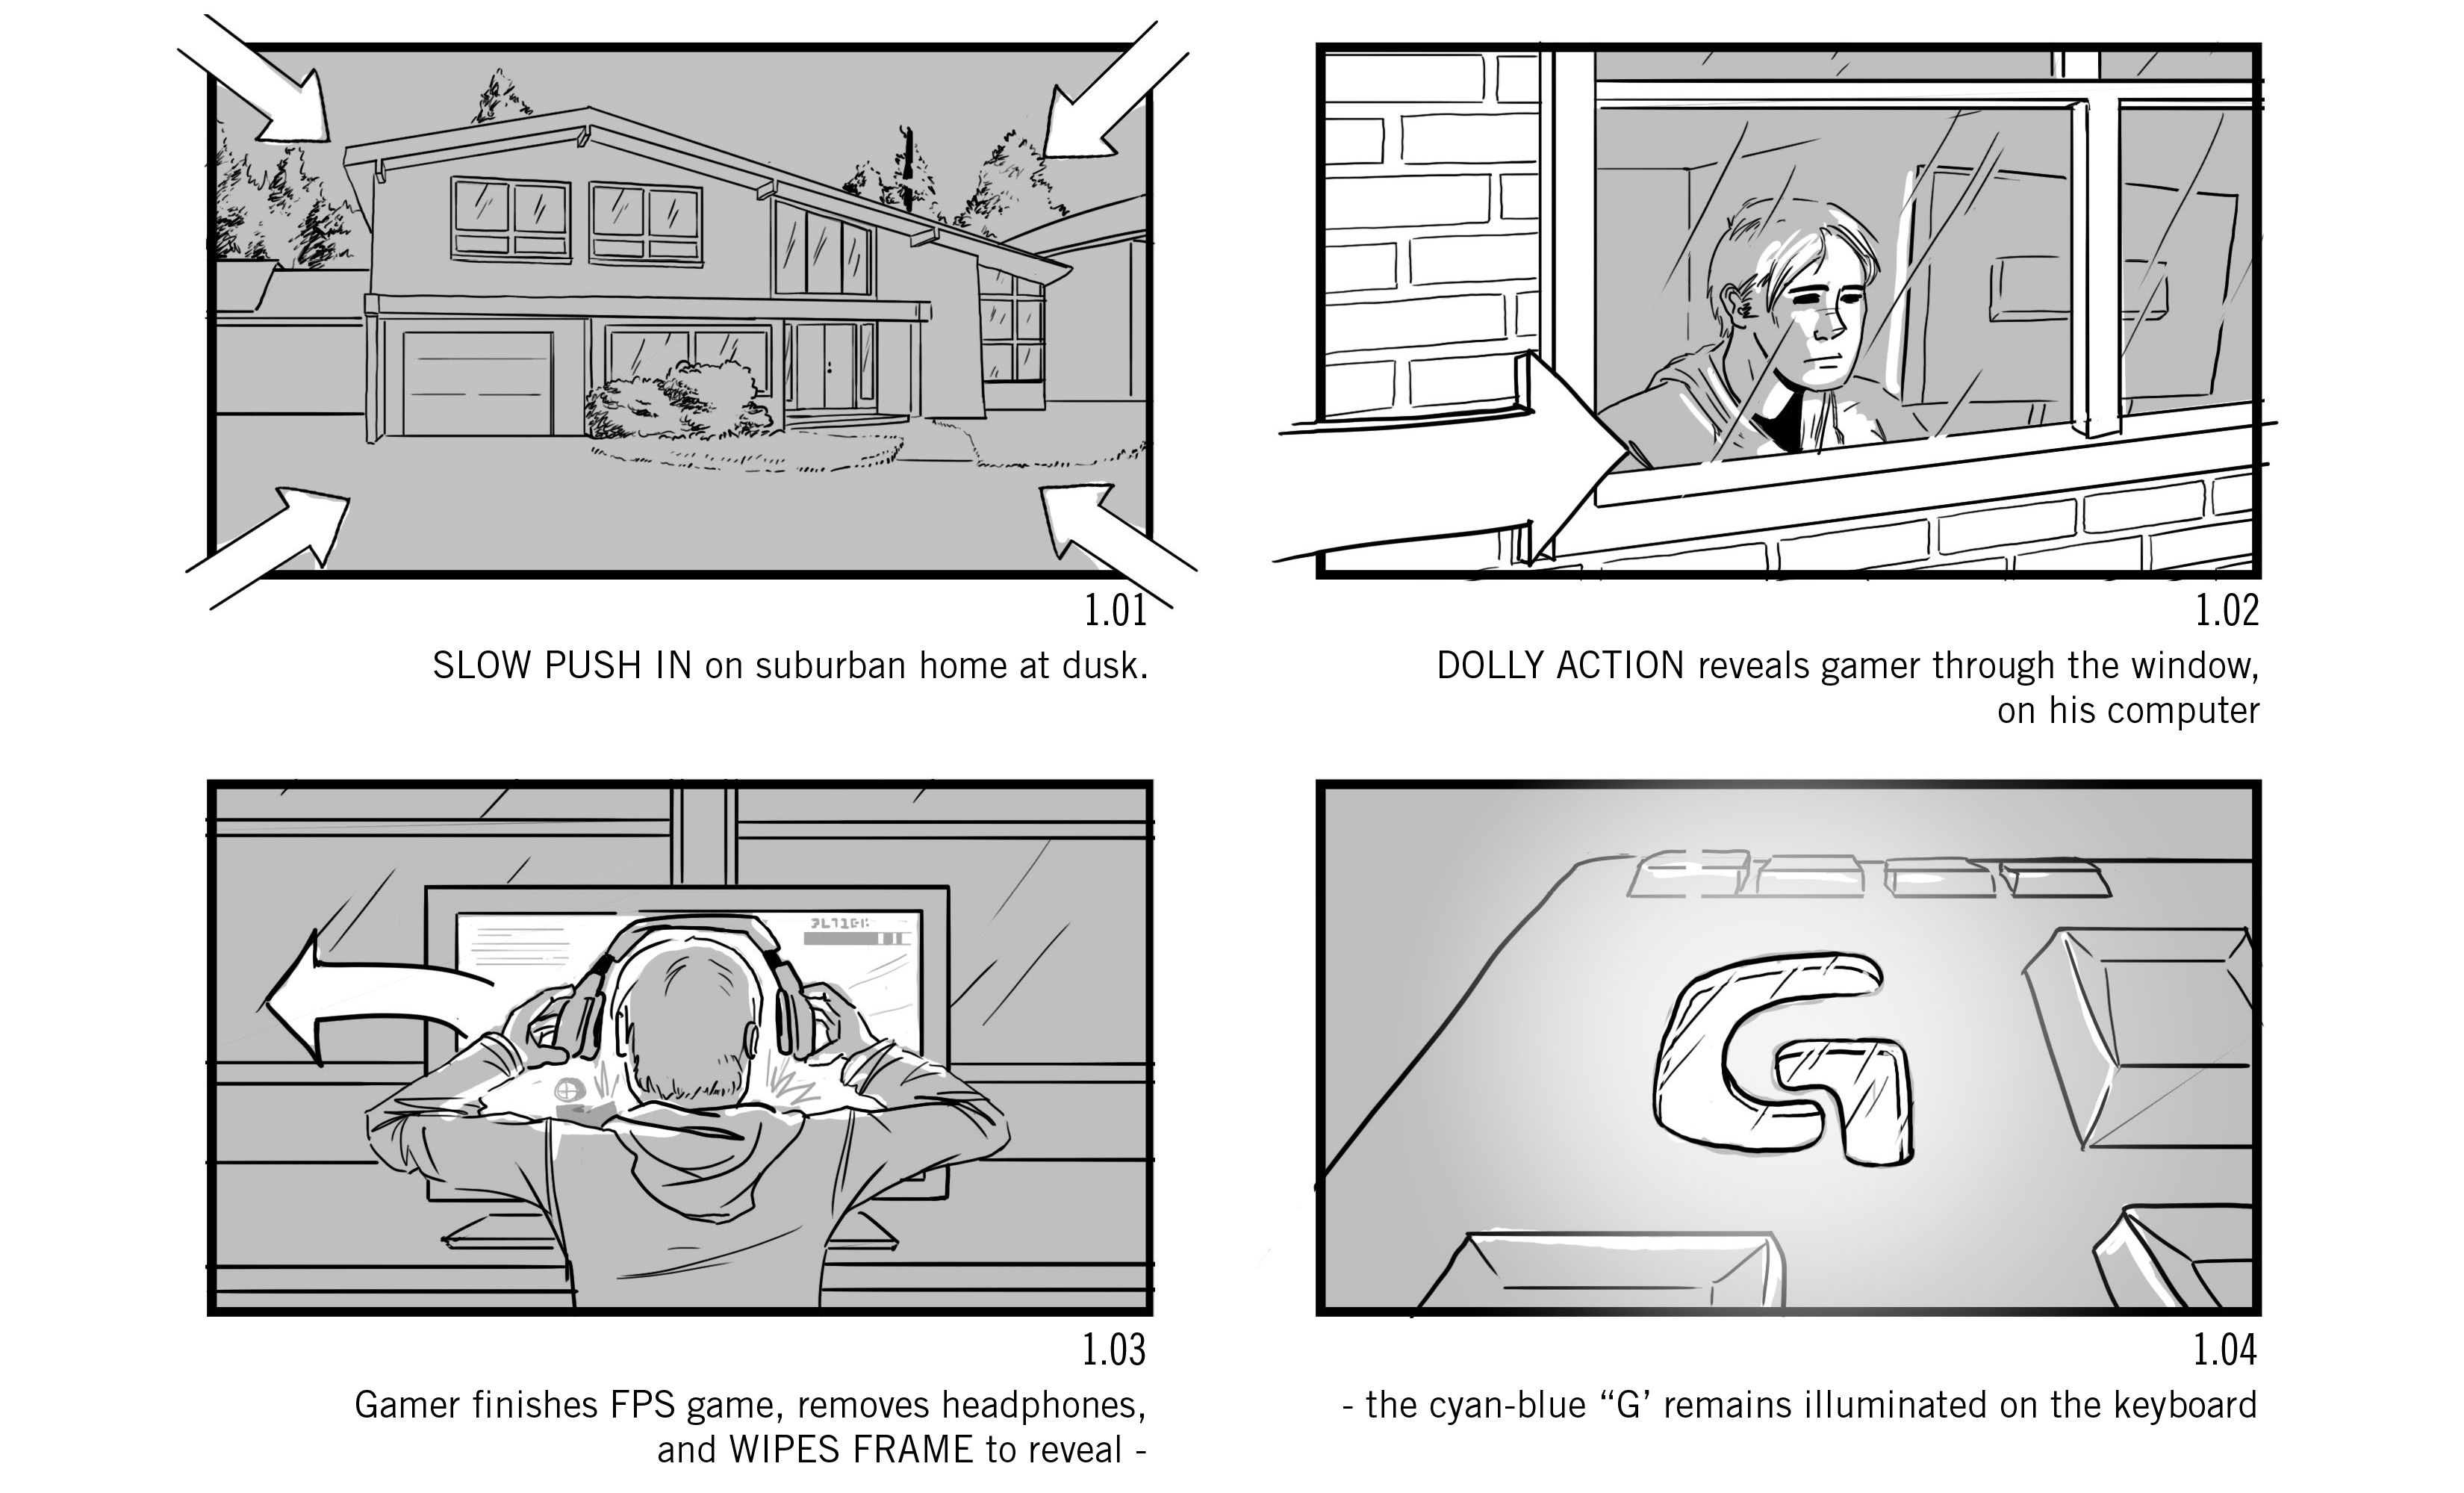 Commercial Storyboards For A Spot Advertising LogitechS G